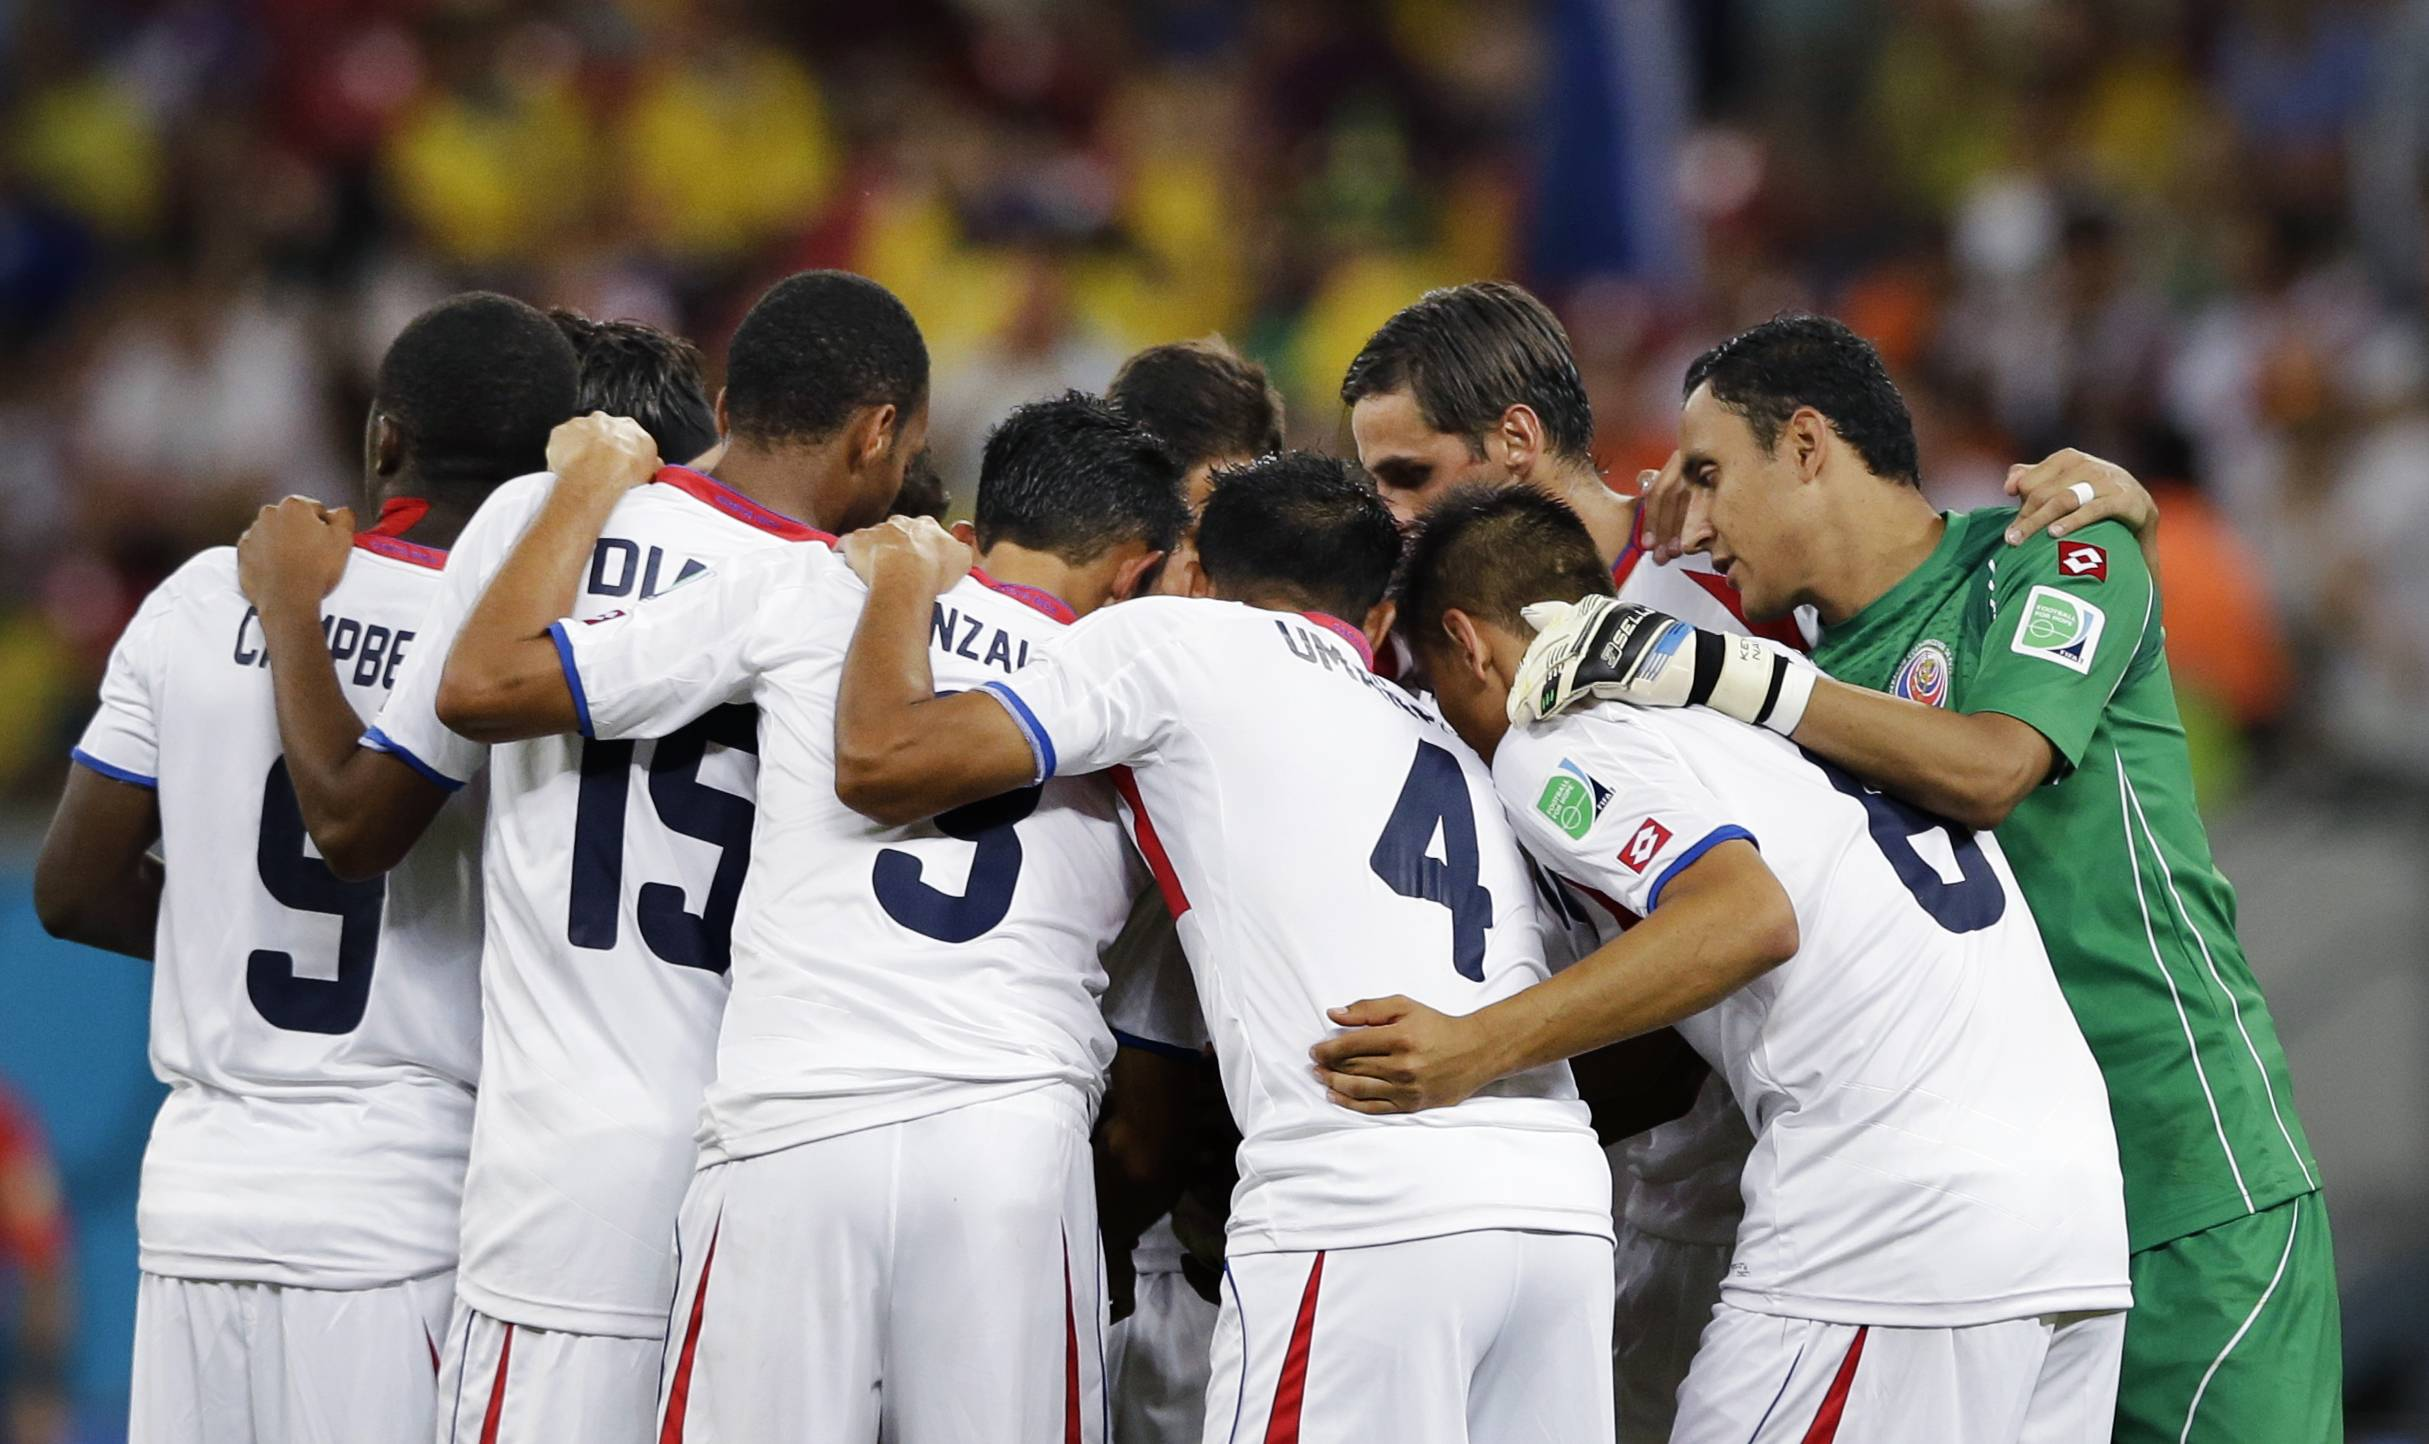 Costa Rica players form a team huddle before the start of the second half during the World Cup round of 16 soccer match between Costa Rica and Greece at the Arena Pernambuco in Recife, Brazil, Sunday, June 29, 2014.